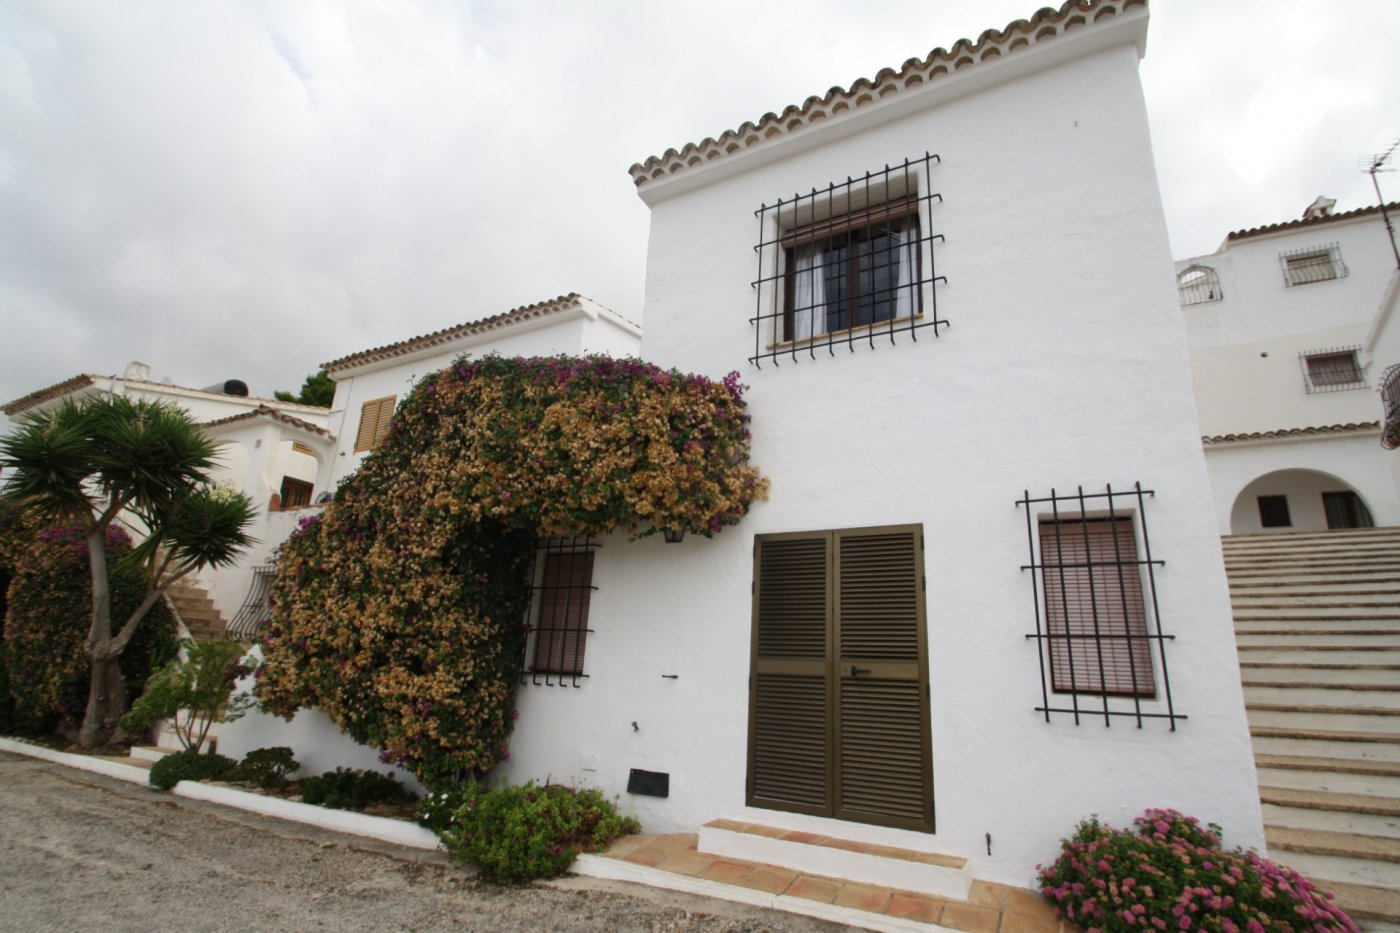 4 Bedroom Town house in Benitachell